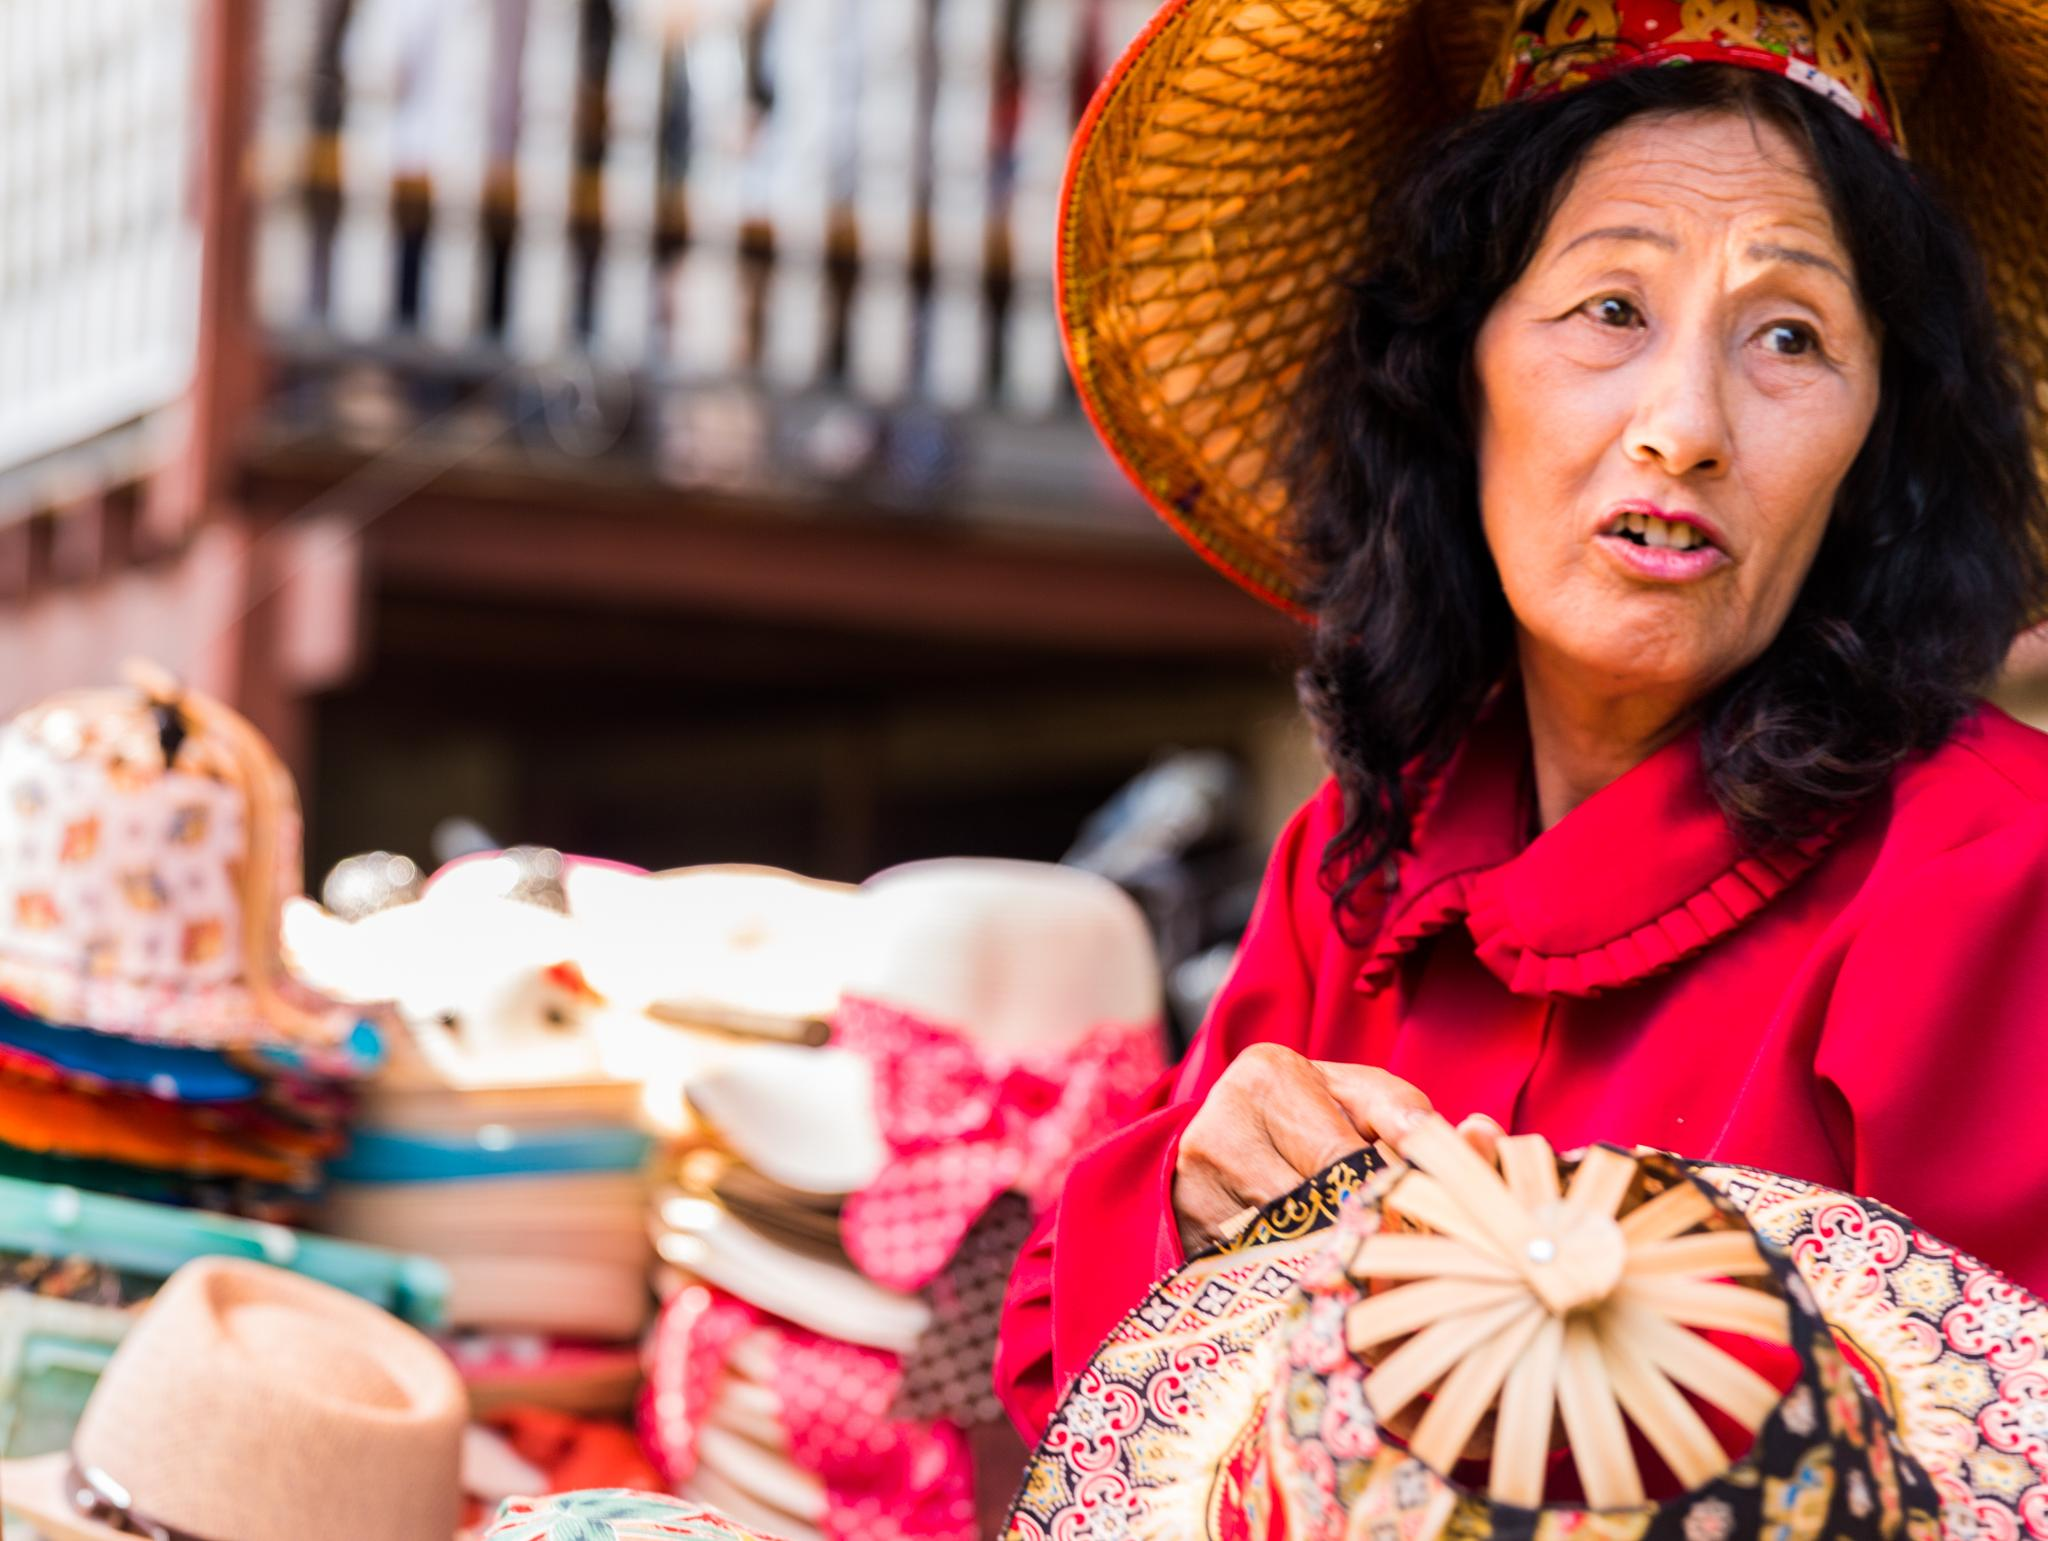 Thailand Hat Seller by Ranjith